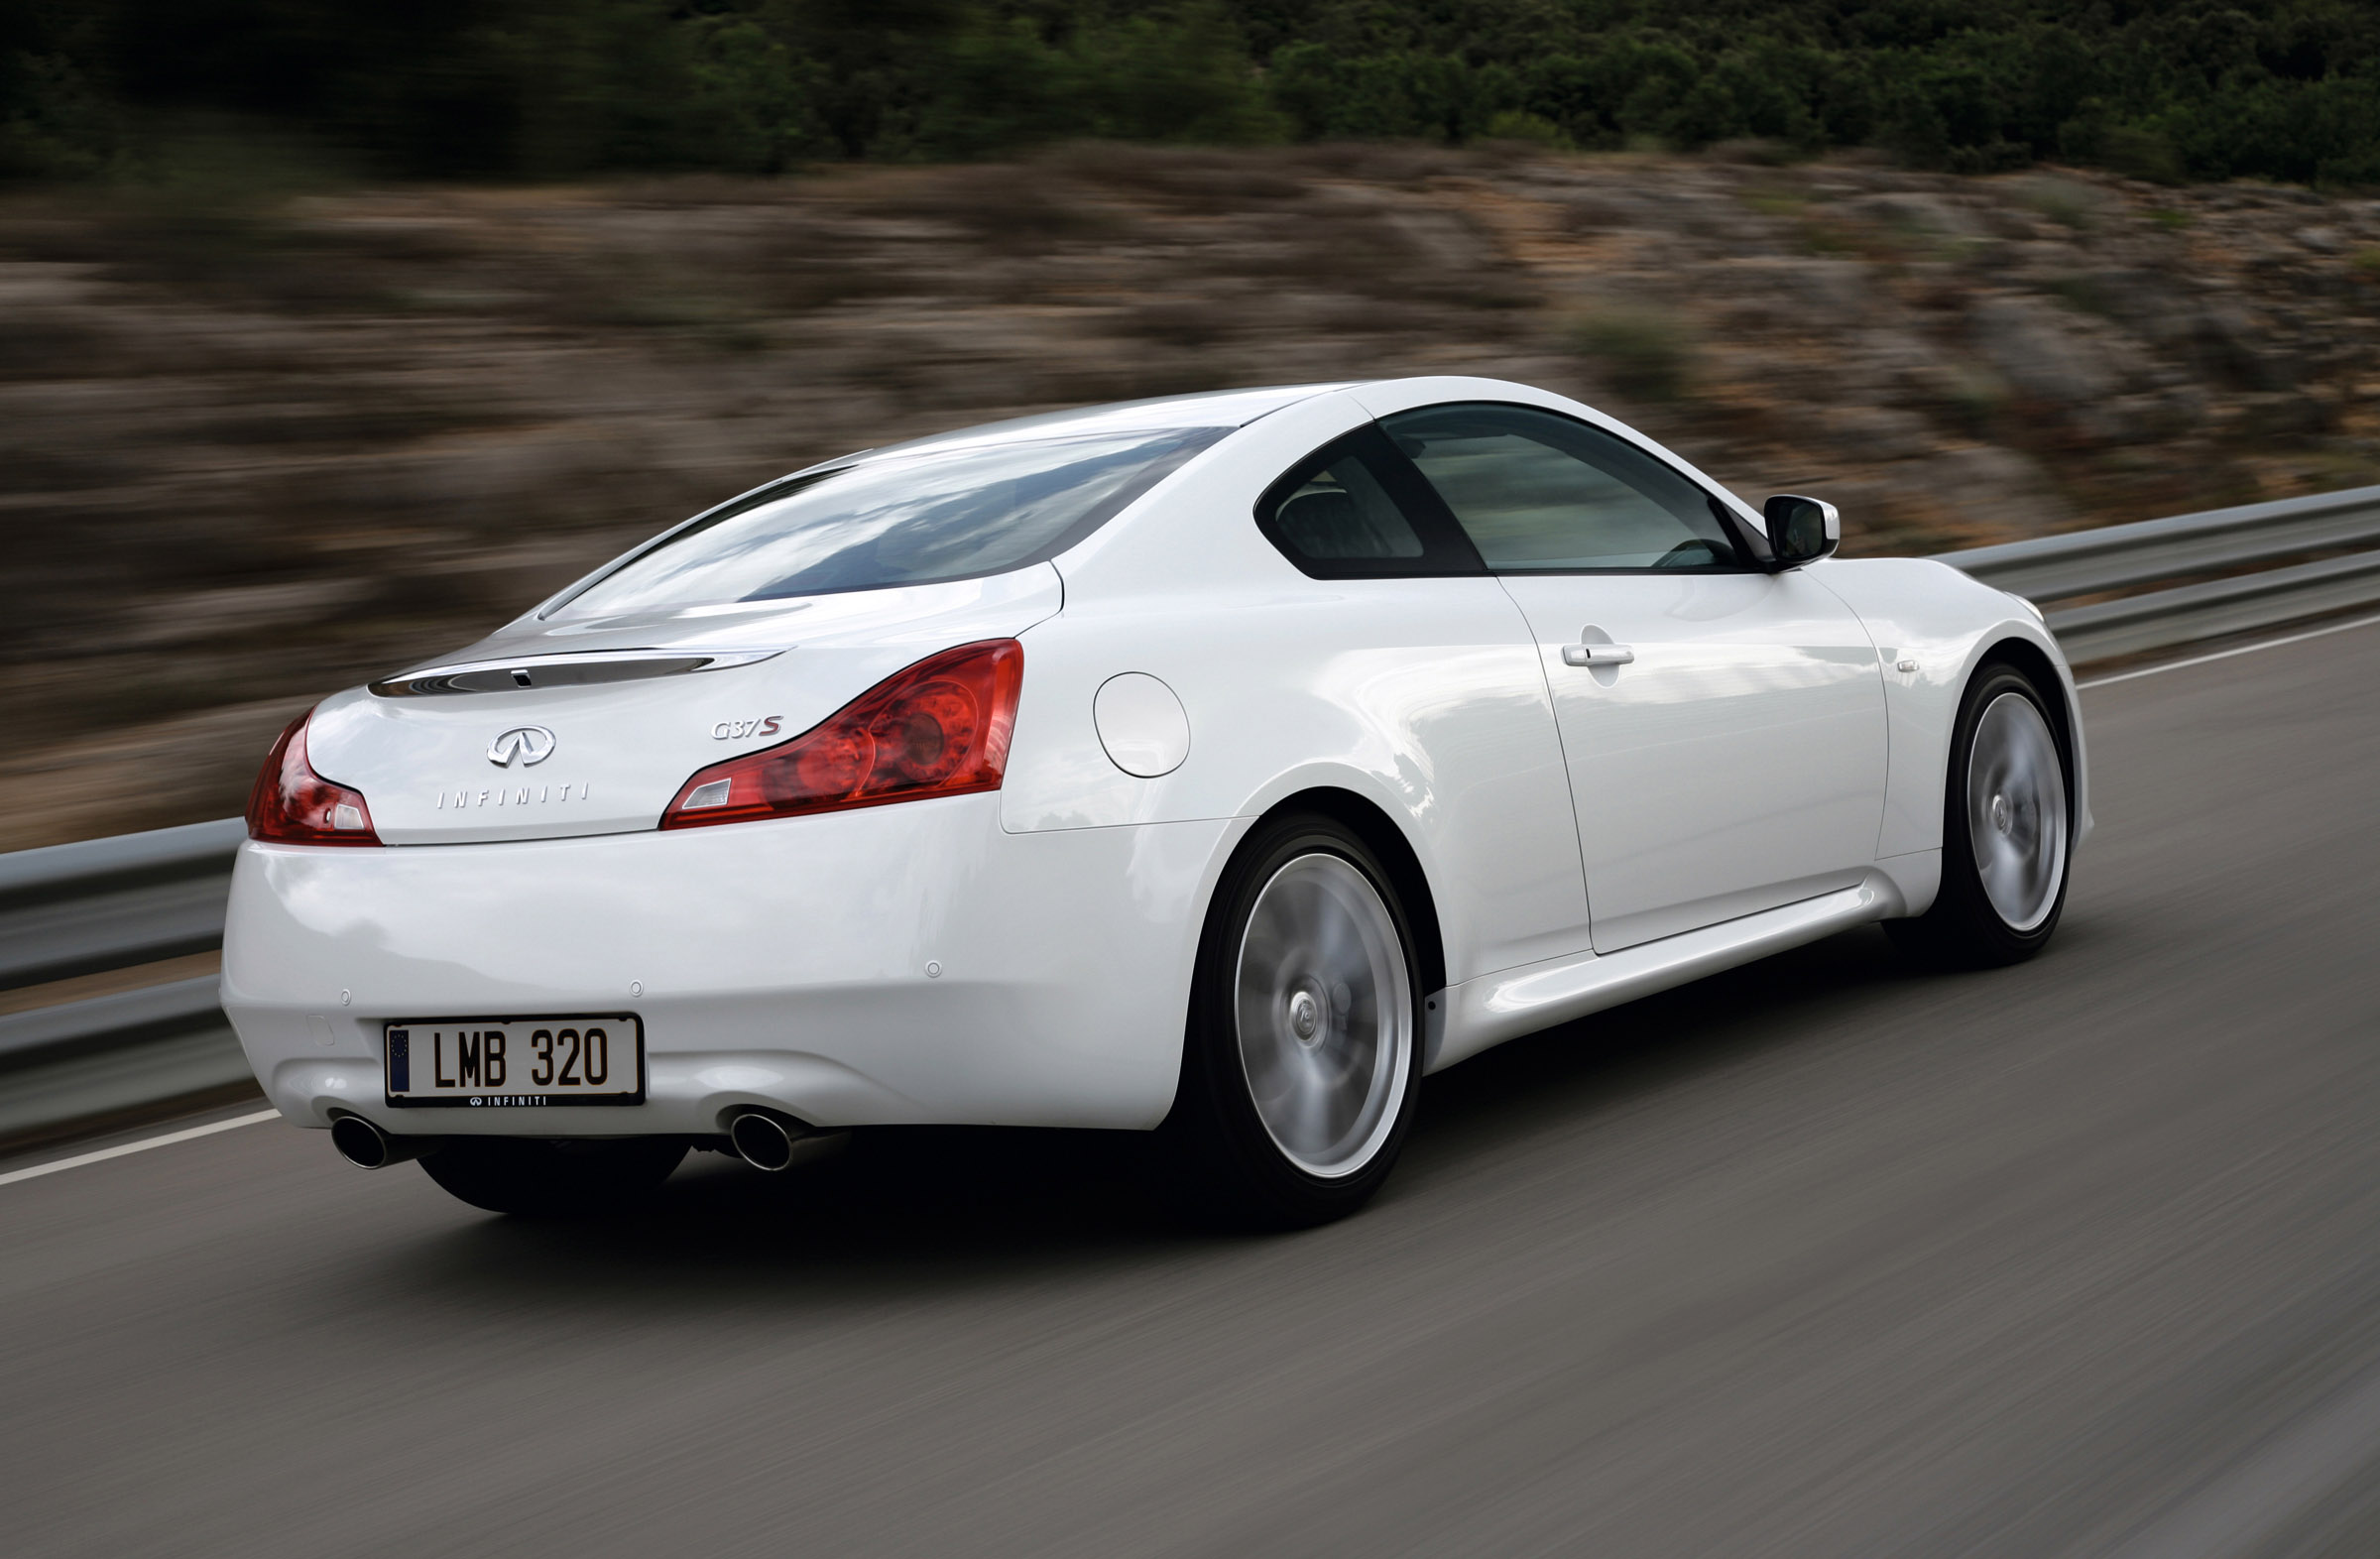 Infiniti g37 coupe the sophisticated sports coupe infiniti g37 coupe vanachro Images